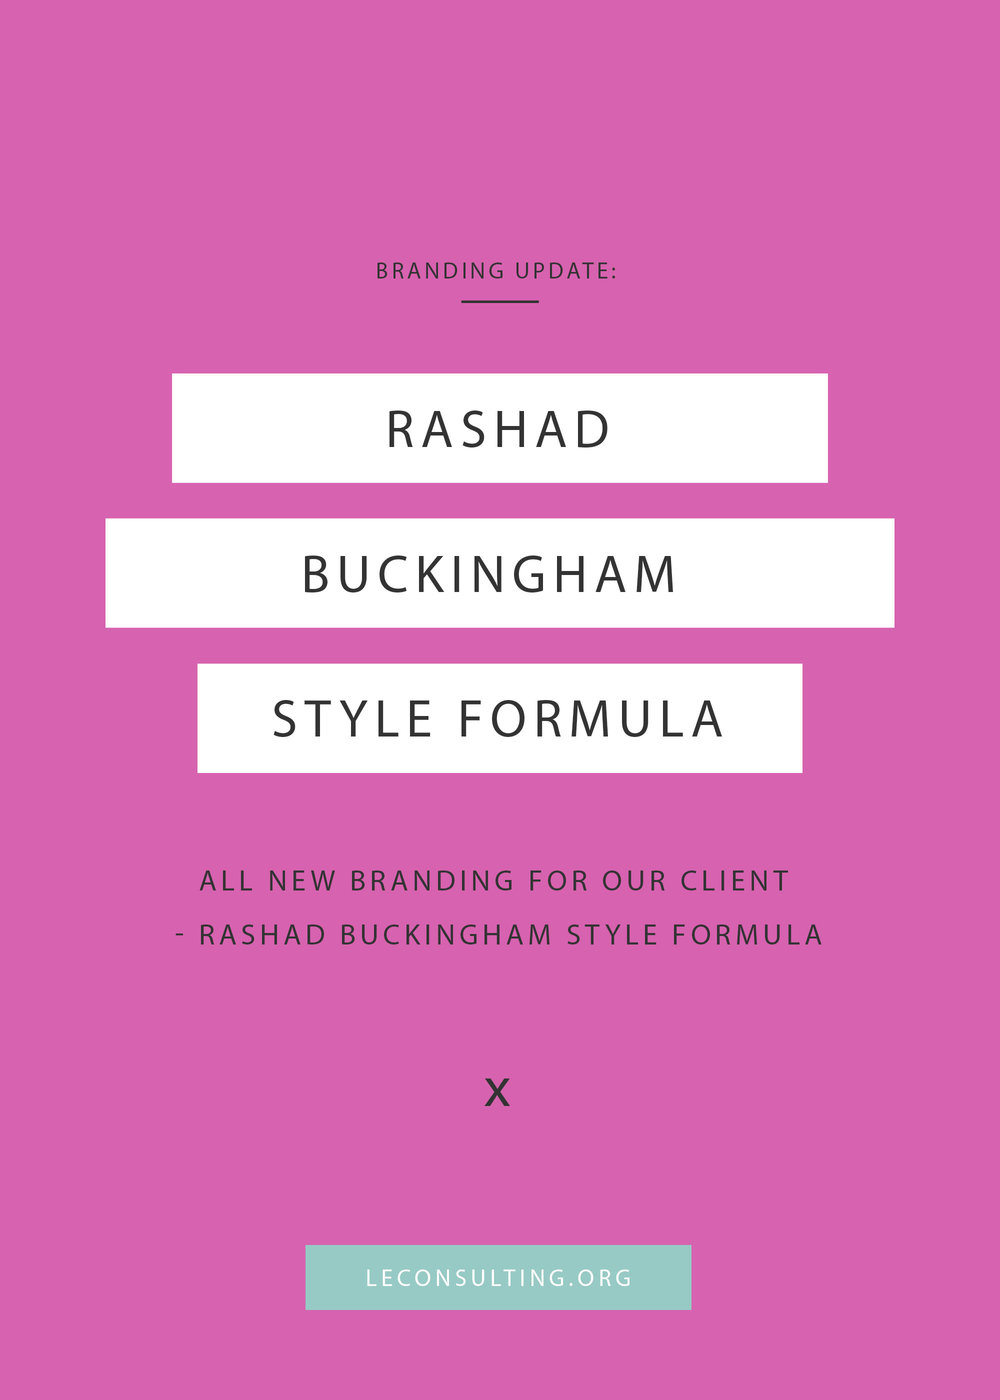 Rashad Buckingham Style Formula, a personal styling company, turned to Le Consulting for branding assistance. Click through to see the outcome of Rashad Buckingham Style Formula's branding update. If you need marketing assistance for your creative business, contact Le Consulting at leconsulting.org. | LE Consulting